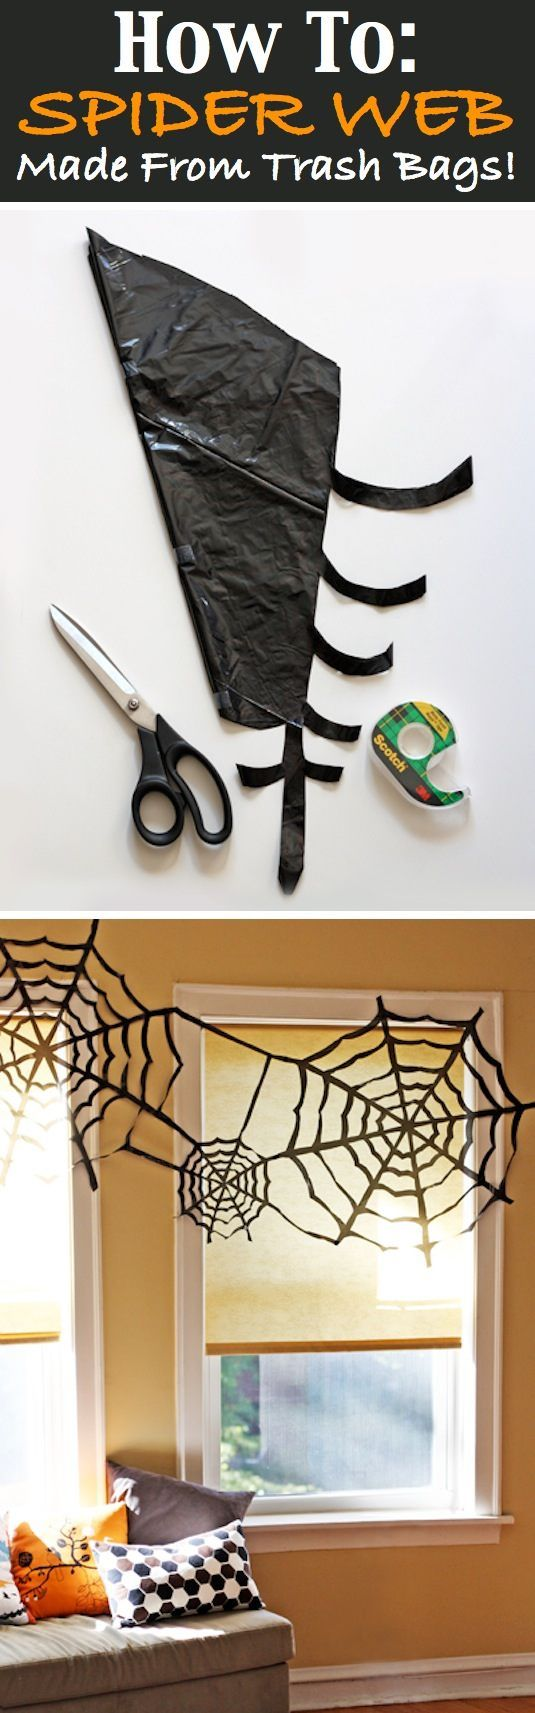 16 Easy But Awesome Homemade Halloween Decorations Like How To